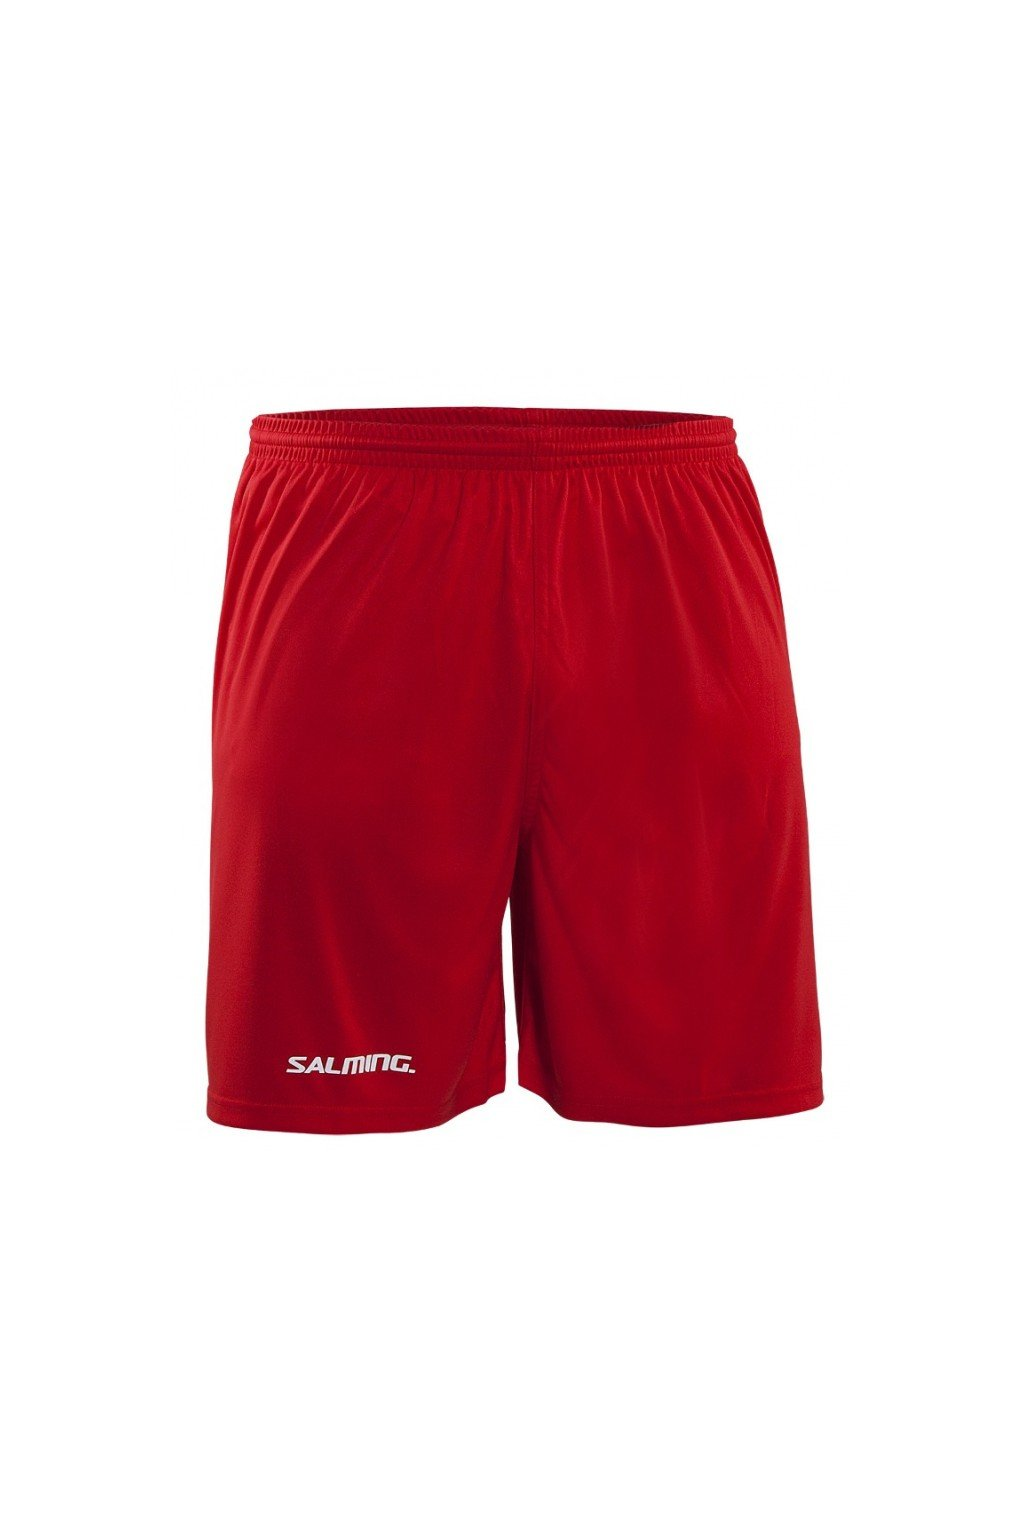 salming core shorts jr red 164